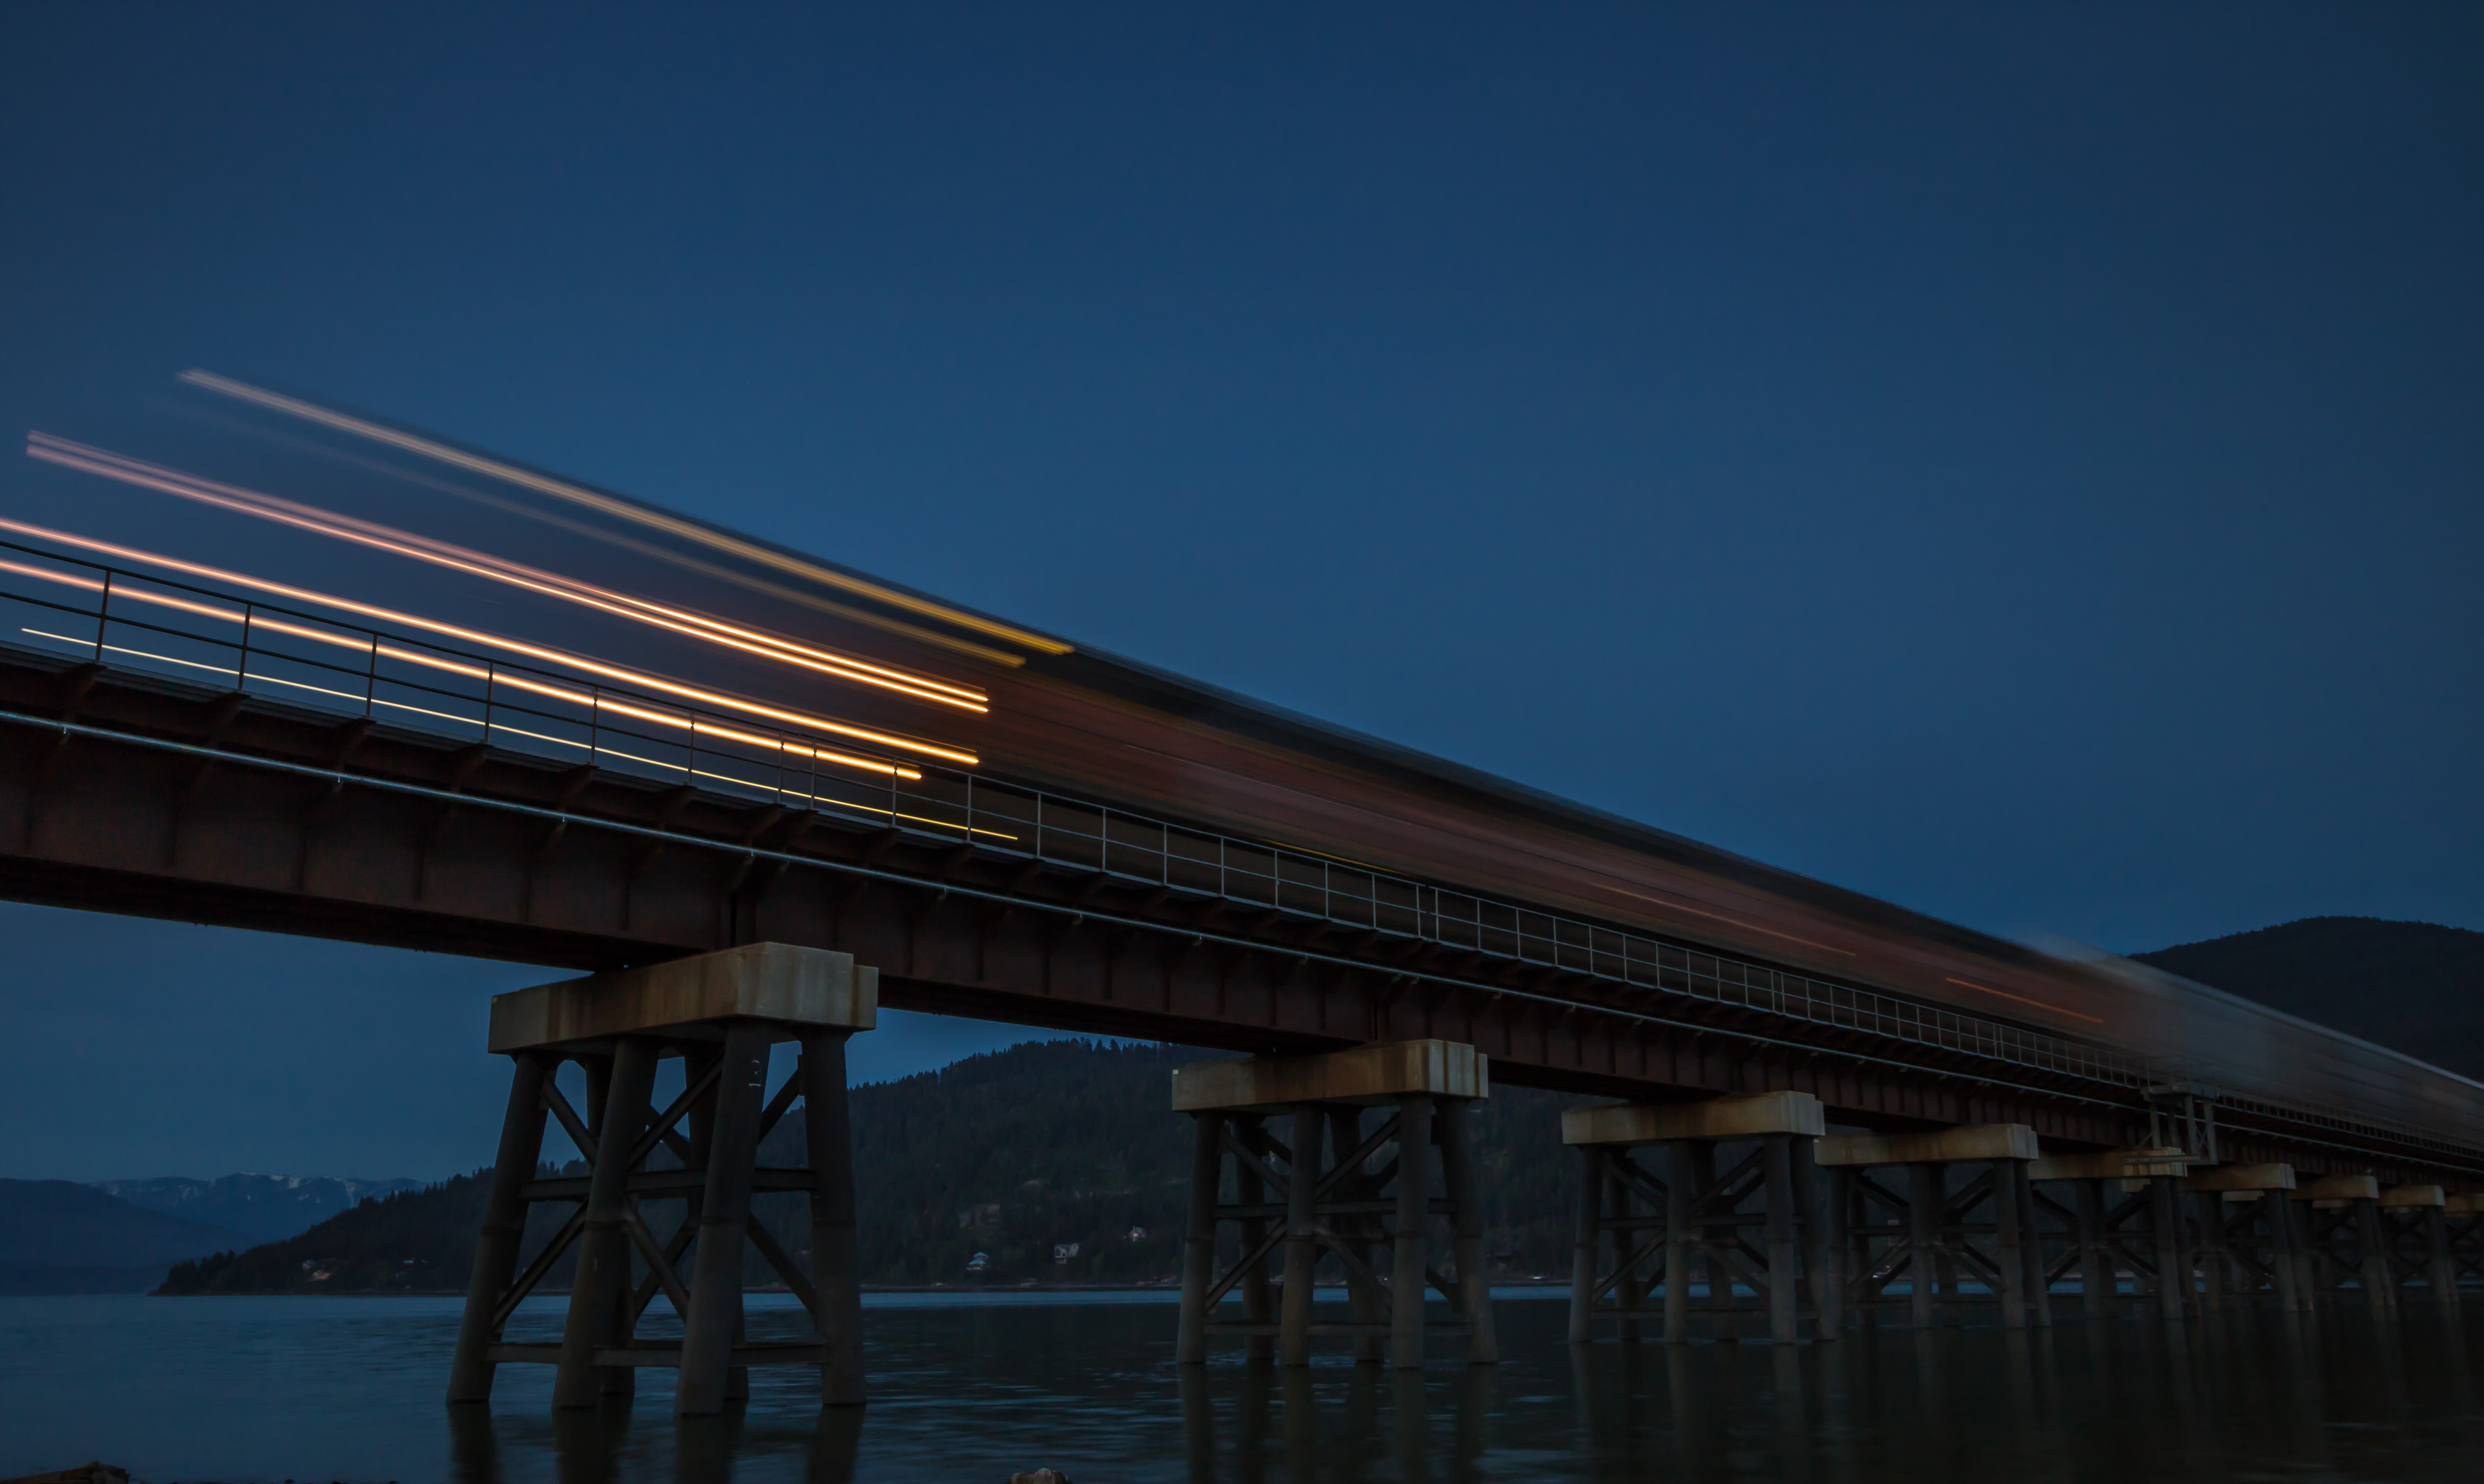 timelapse photo of train at nighttime